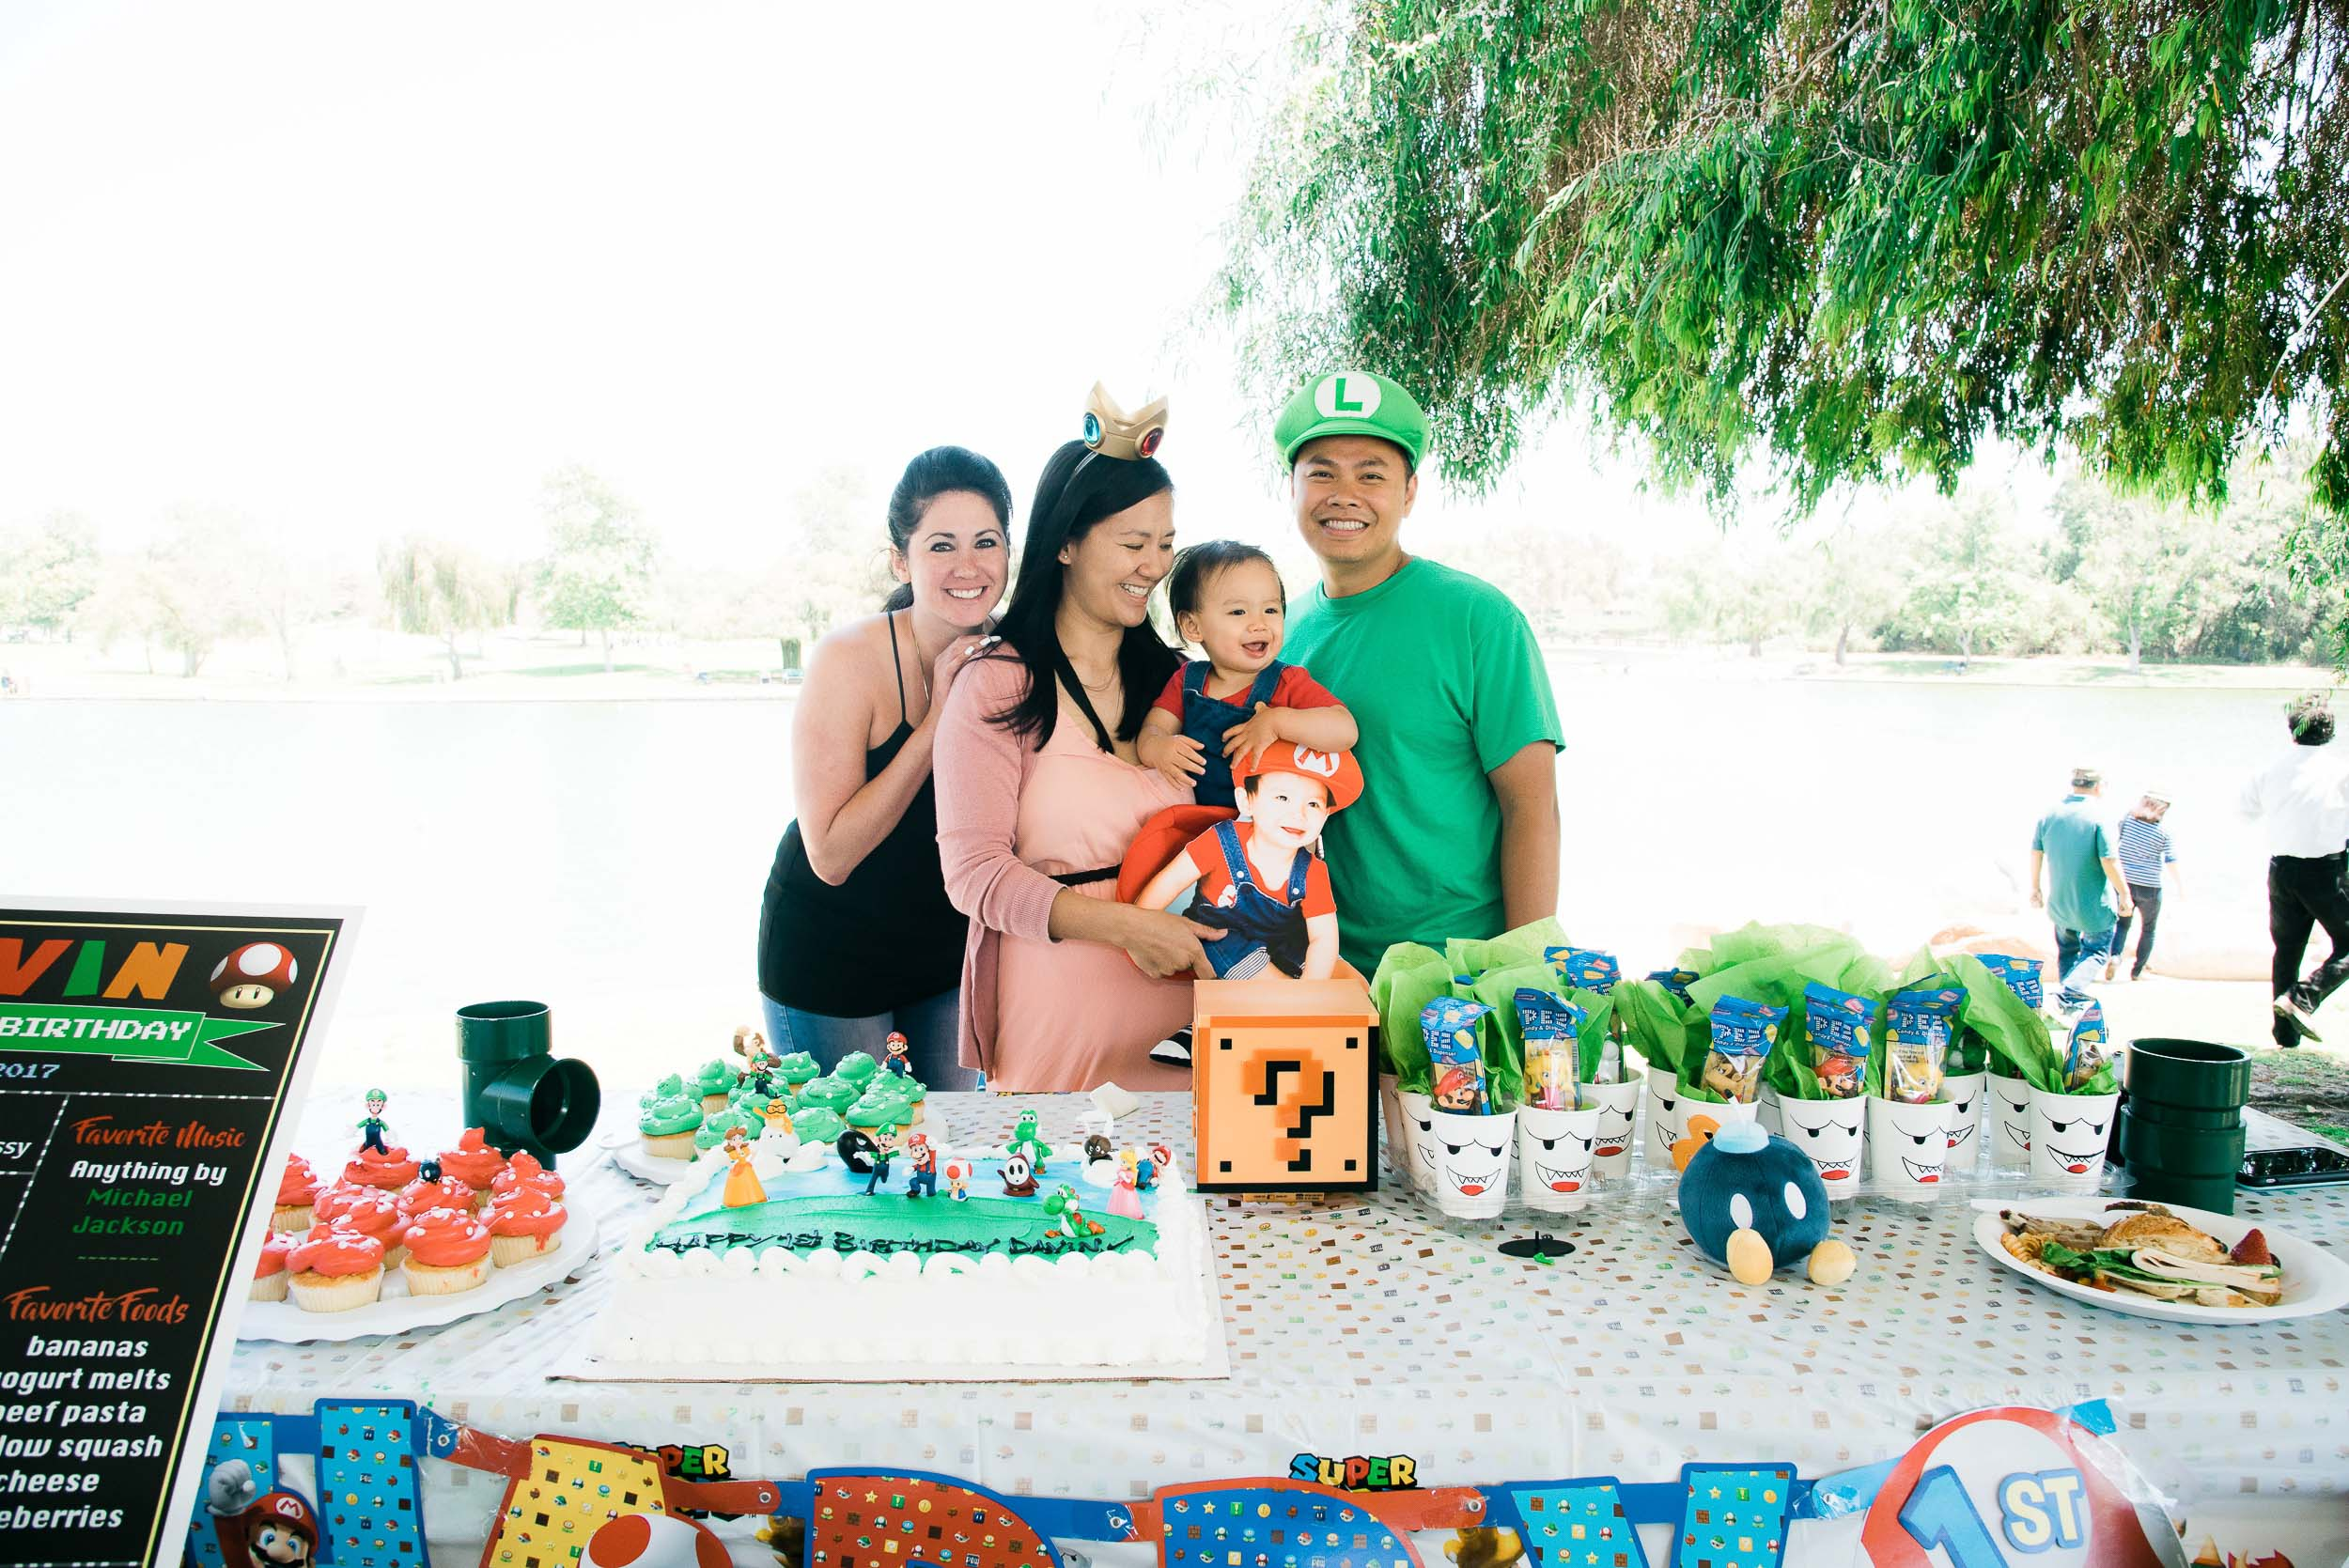 Bryan-Miraflor-Photography-Davin-First-Birthday-Irvine-20170603-0429.jpg